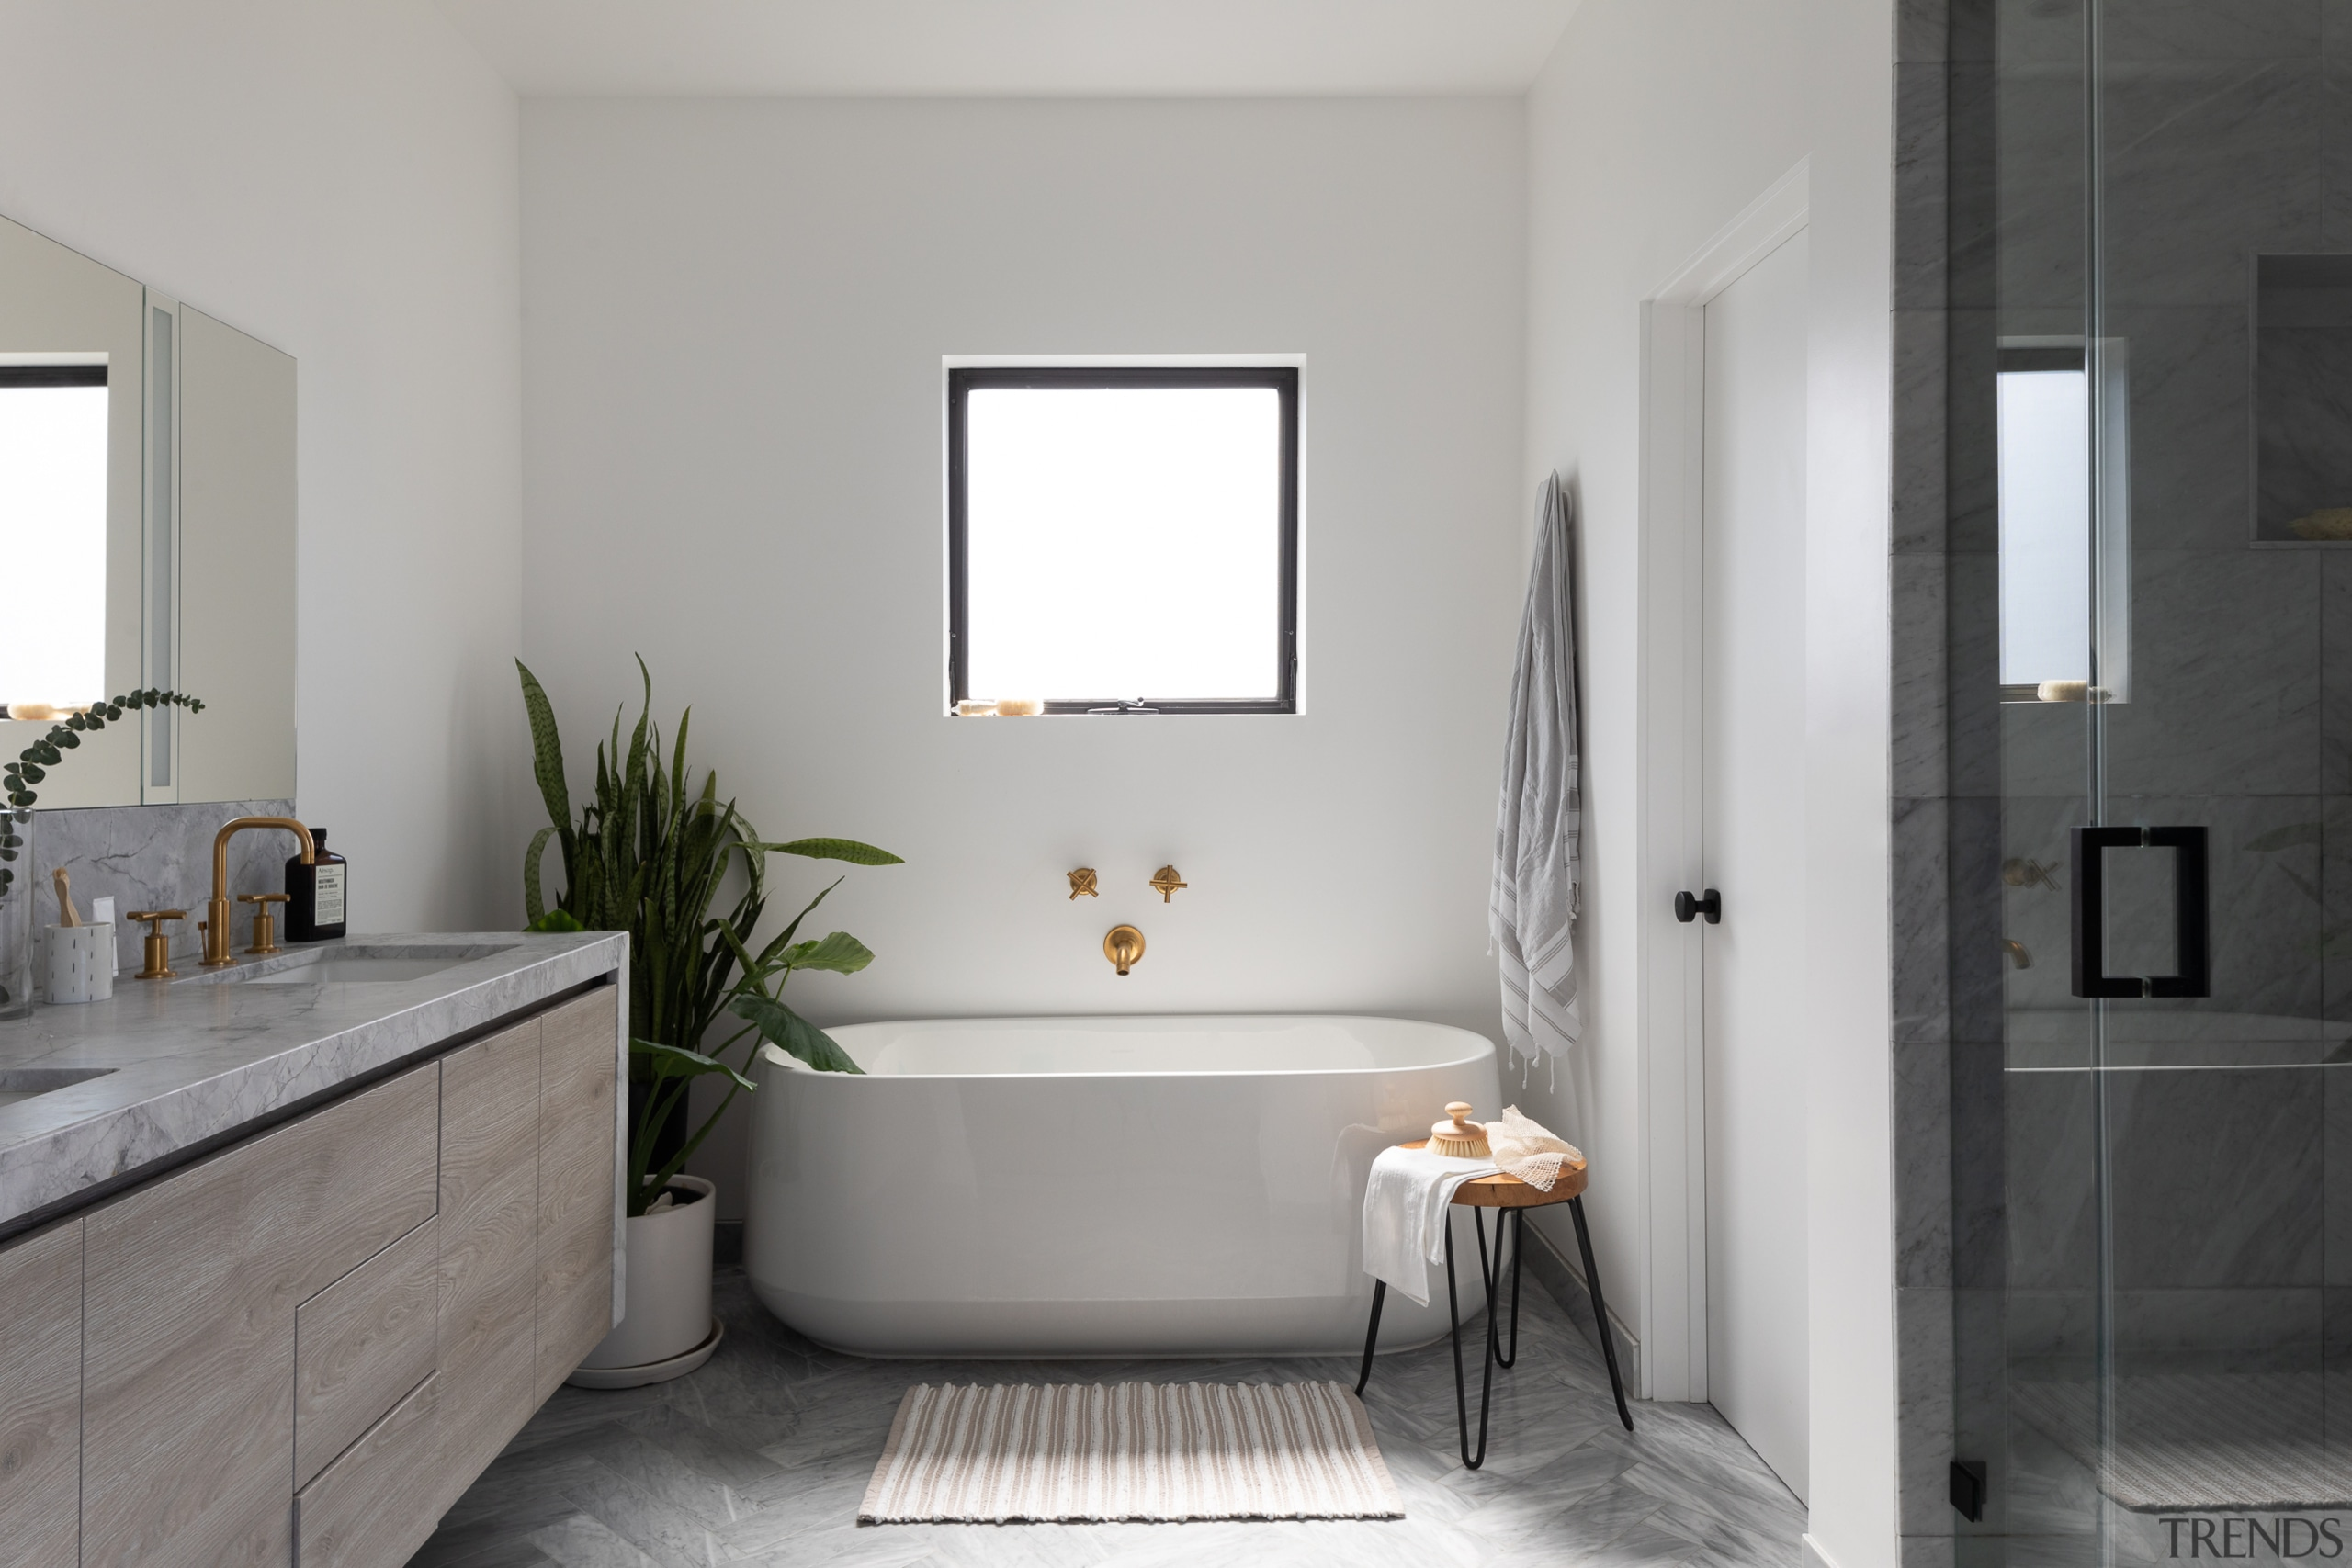 The plumbing fixtures float against the simple white